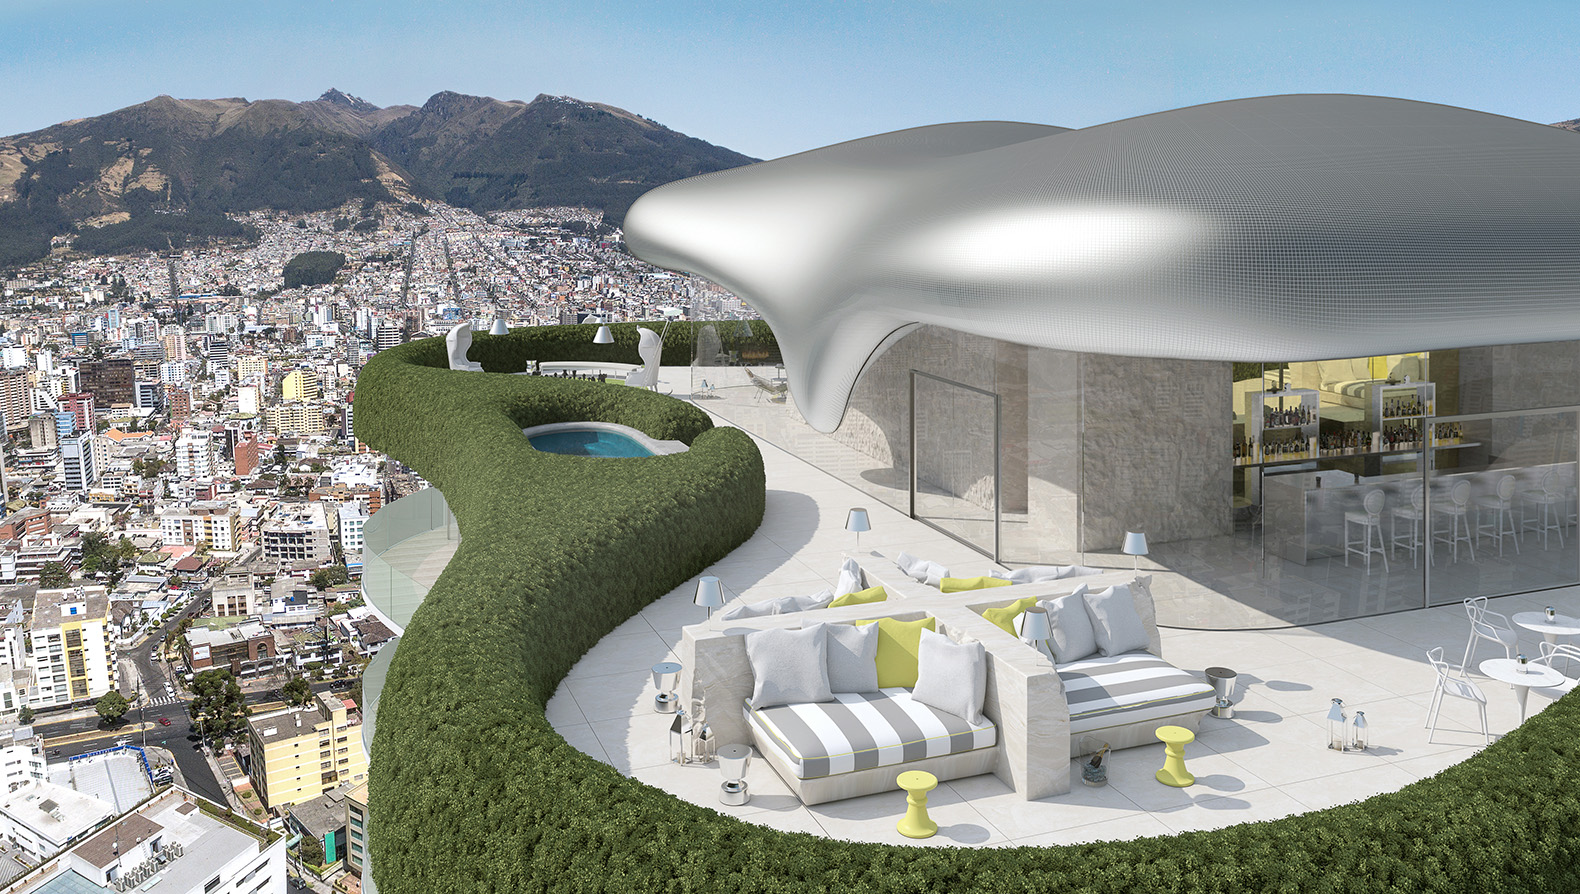 Philippe Starck reinvents himself again with striking green YOO Quito tower